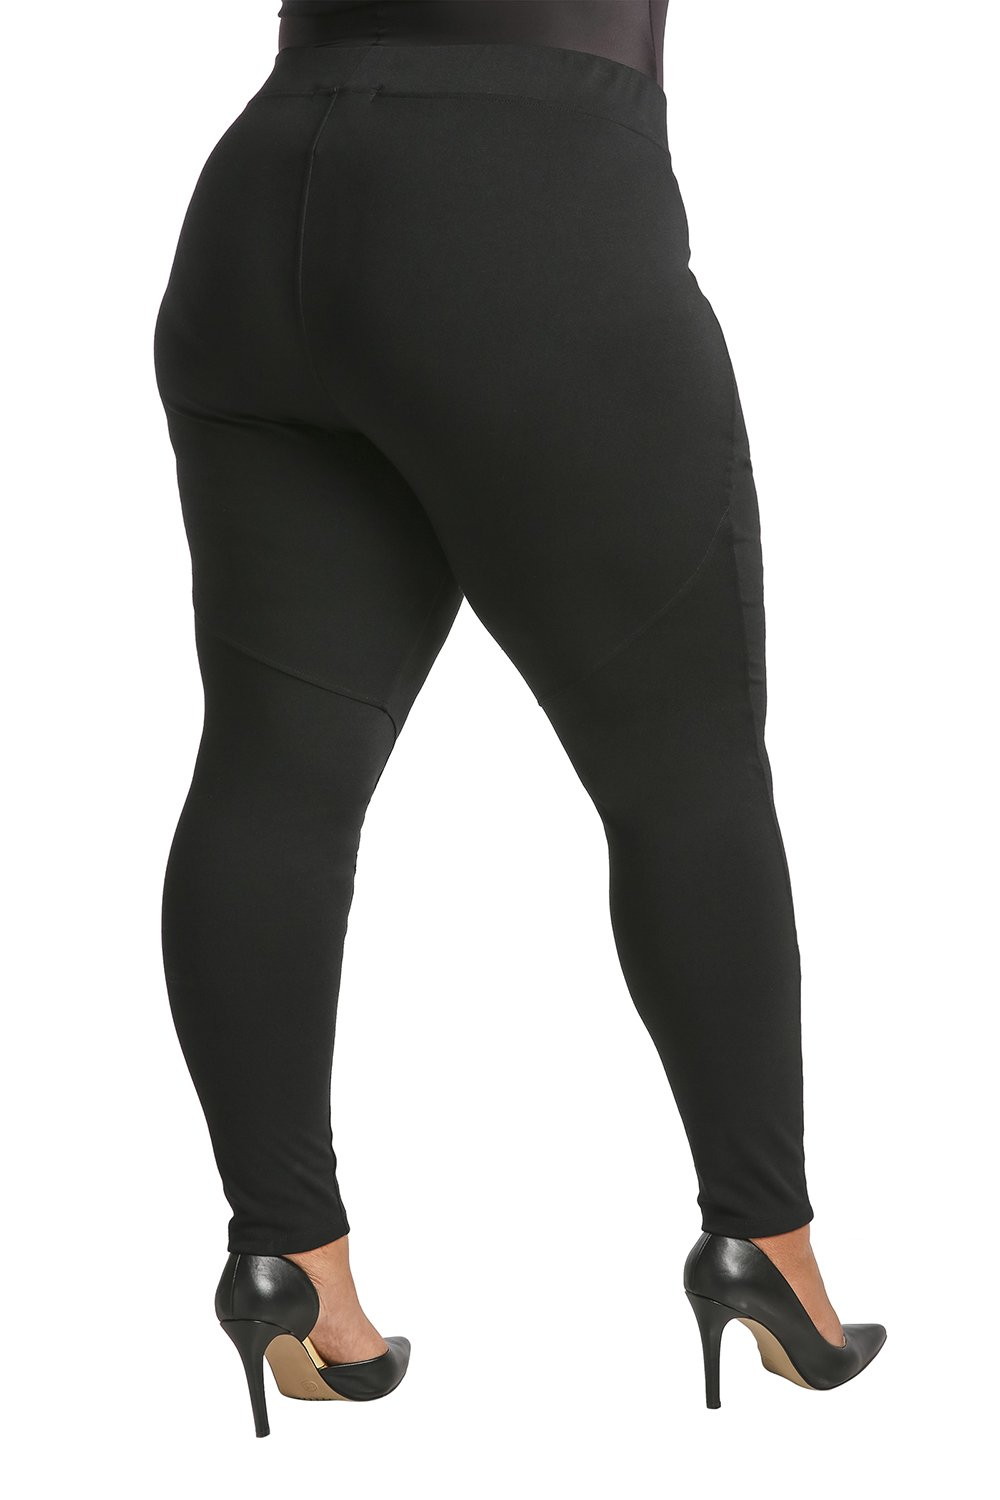 Poetic Justice Plus Size Women's Curvy Fit Black Stretch Ponte Pull On Moto Legging Size 2X by Poetic Justice (Image #3)